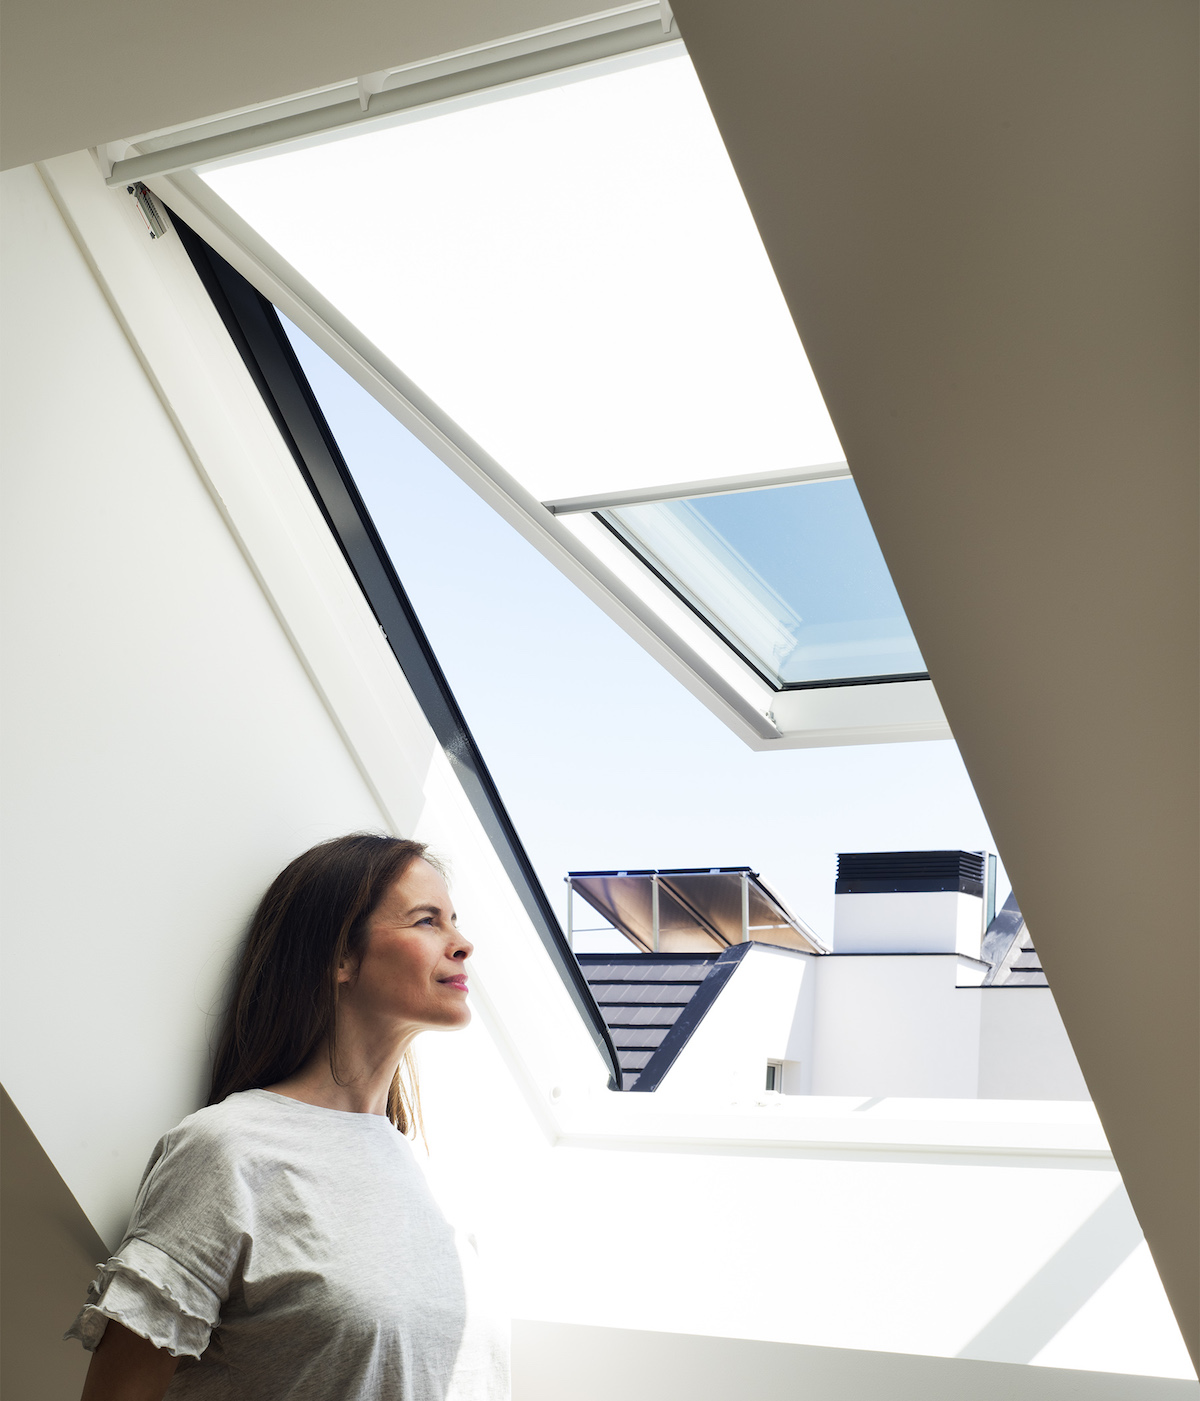 Velux GPL roof window admits natural light and fresh air while maximizing outdoor views